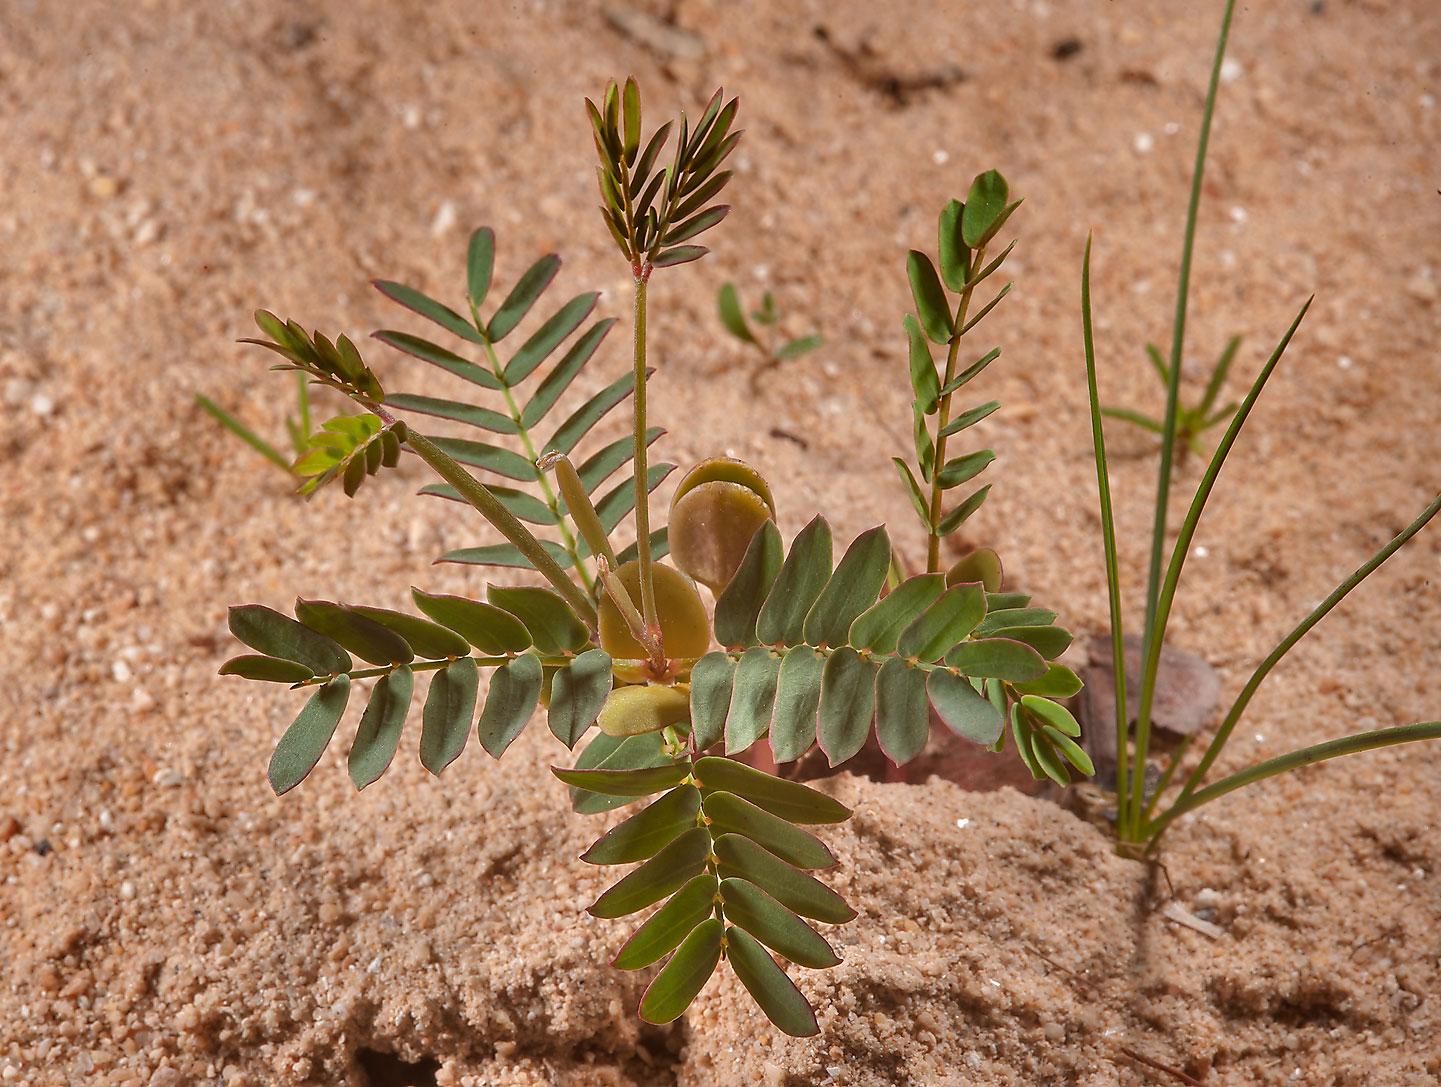 Seedling of Senna italica (Cassia) near Al Khor Hospital. Qatar